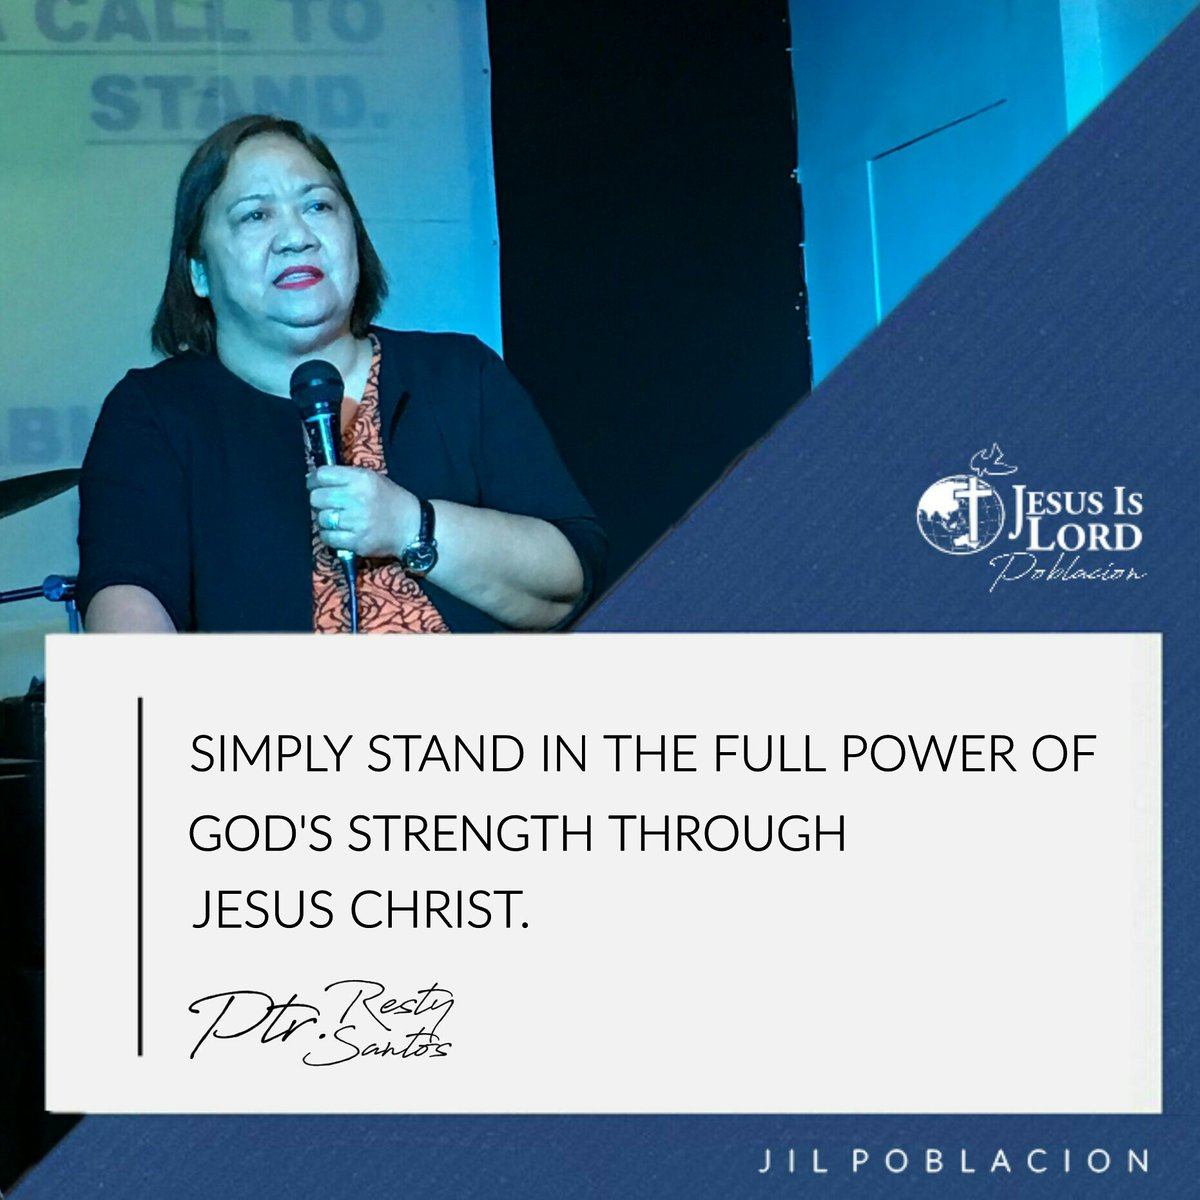 """Simply stand in the full power of God's strength through Jesus Christ."" - Ptr. Resty Santos  #JesusIsLord"